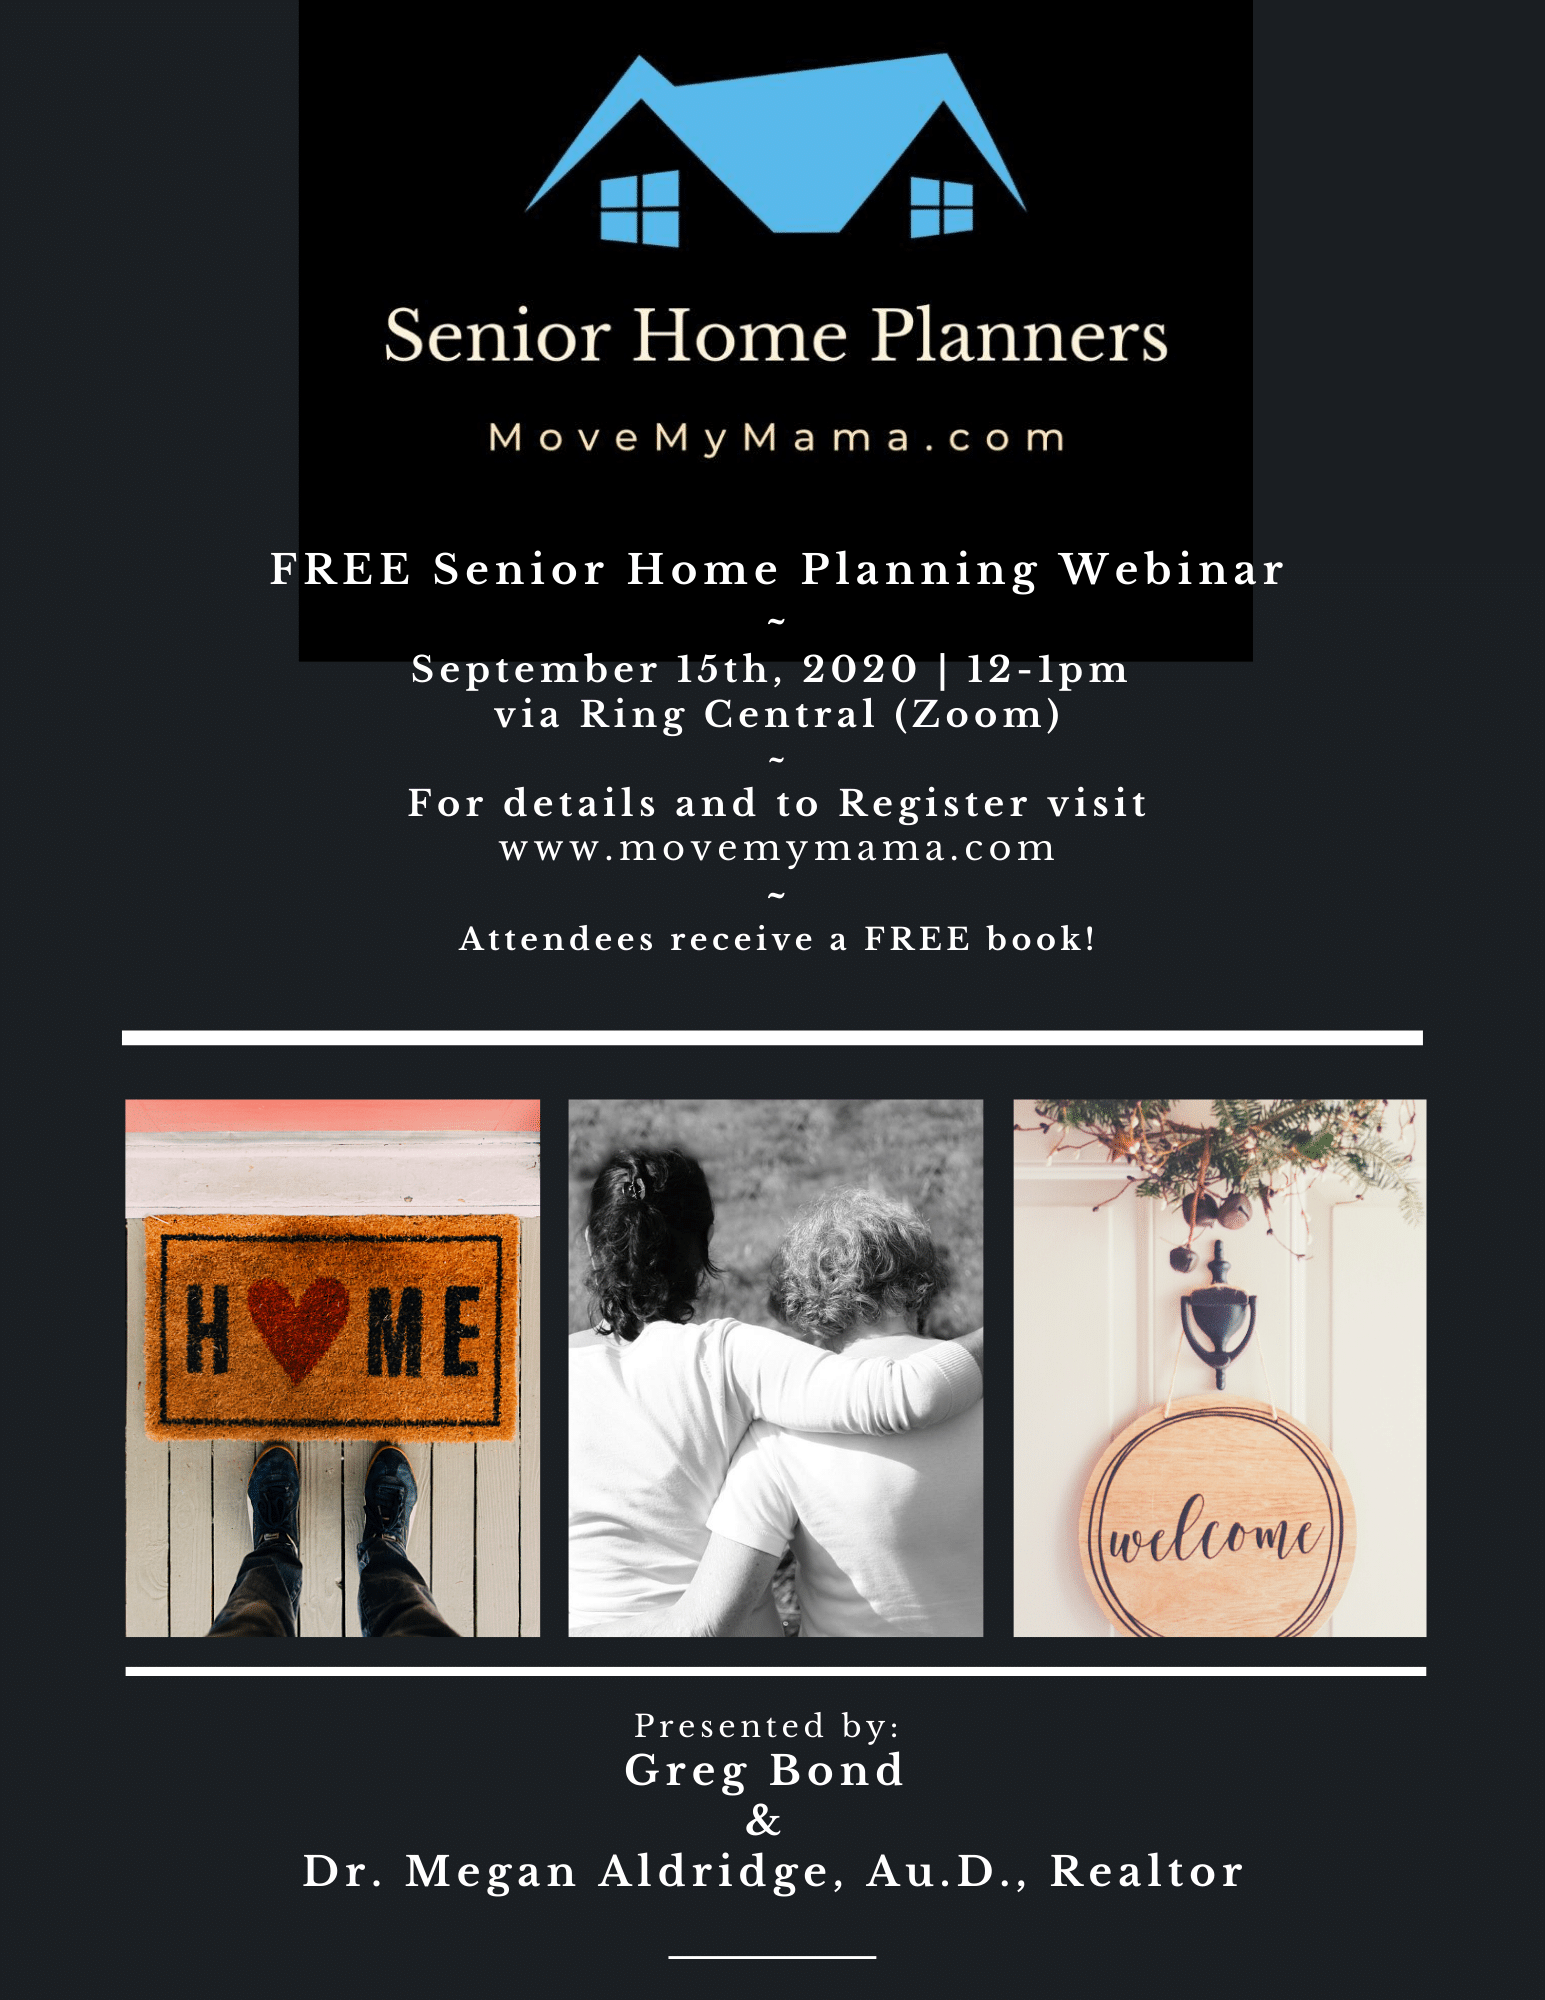 Home To Home: Senior Home Planning Webinar